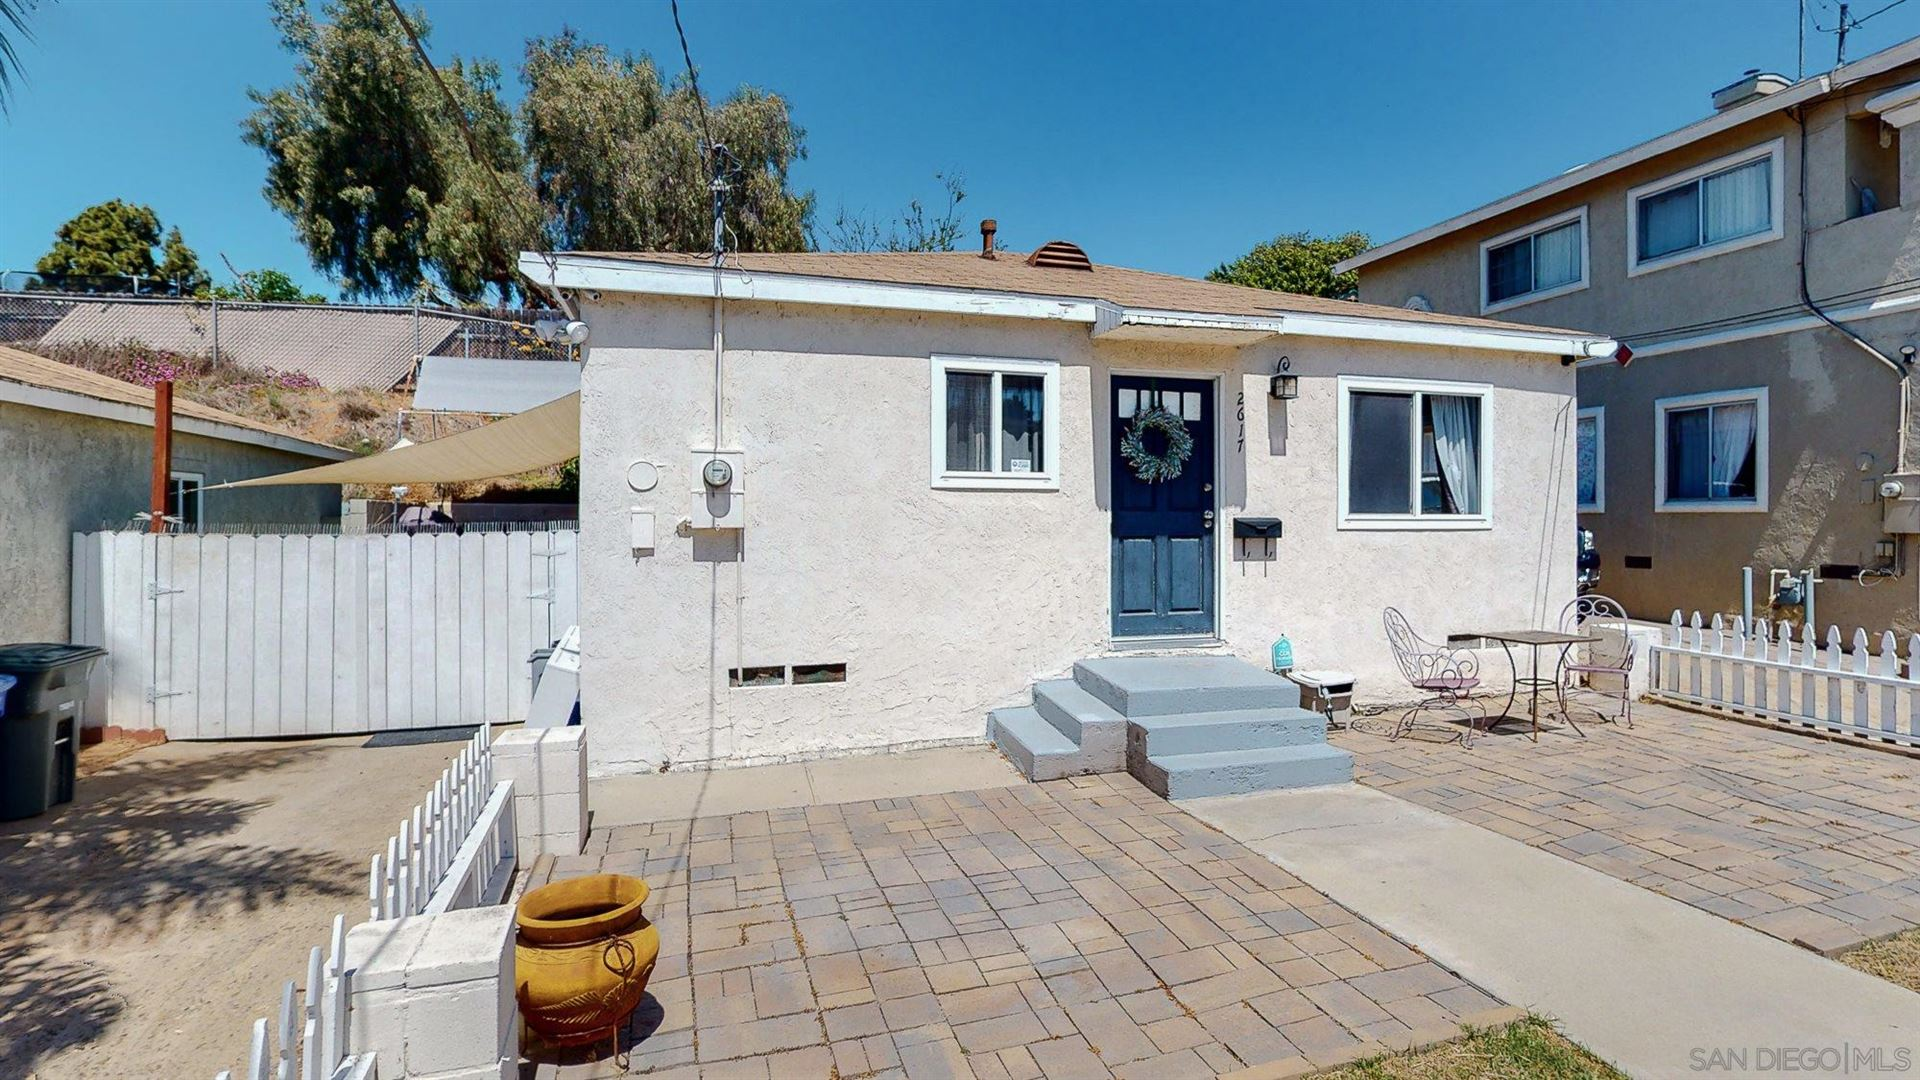 Photo of 2617 E 24th St, National City, CA 91950 (MLS # 210008896)